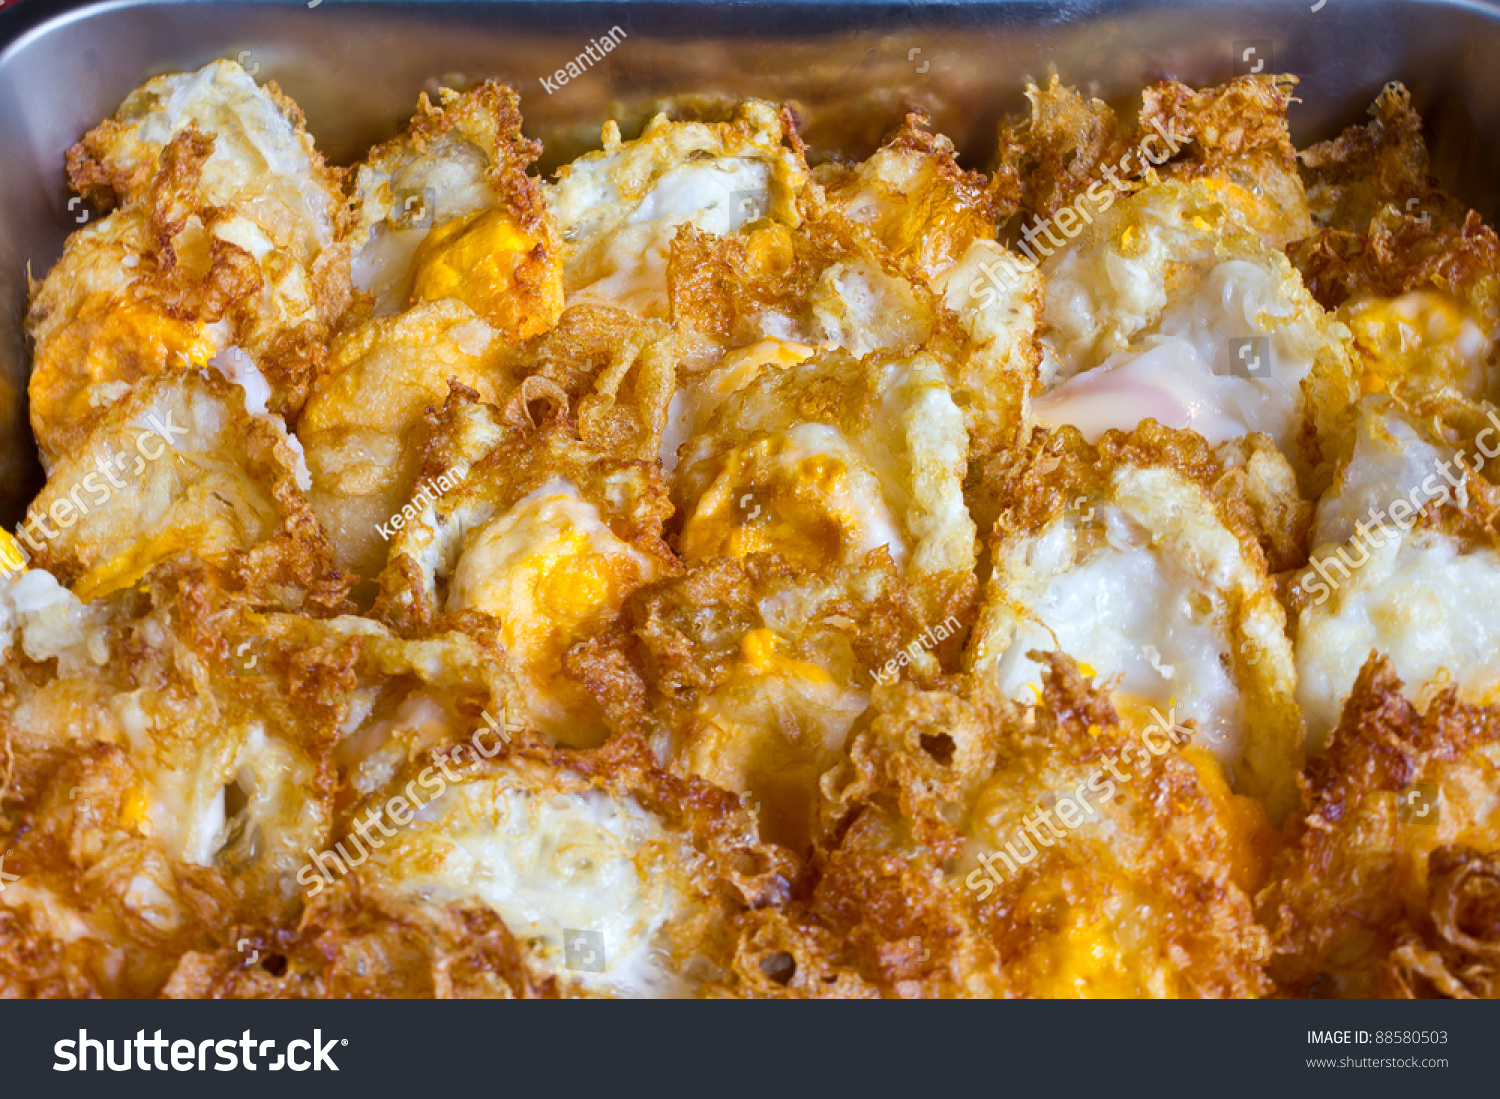 Crispy Fried Egg. Which Is Arranged In Rows On The Tray. Stock ...